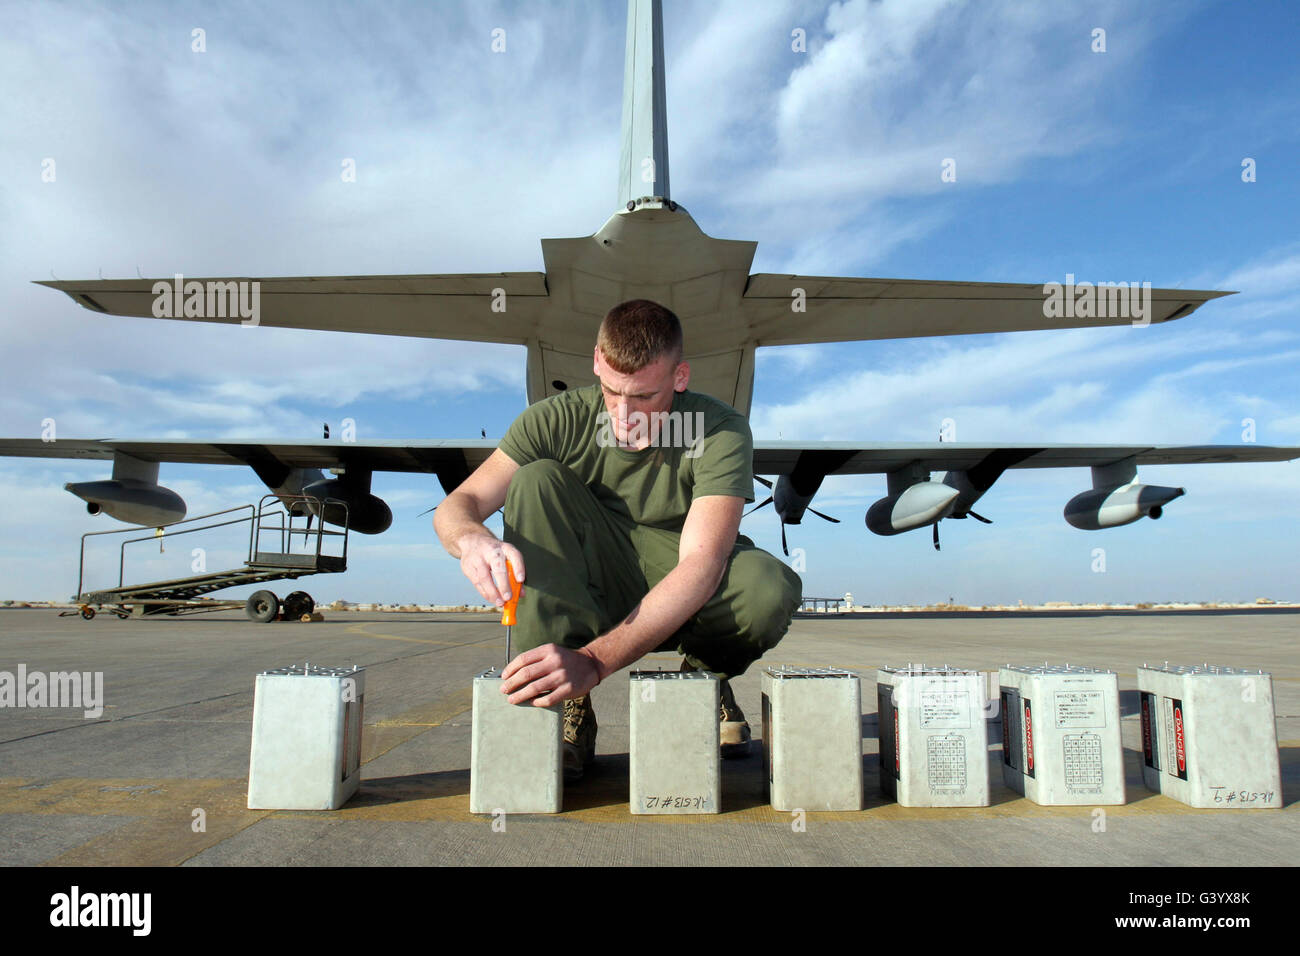 A marine replaces flares in flare dispensers from a KC-130J Hercules. - Stock Image